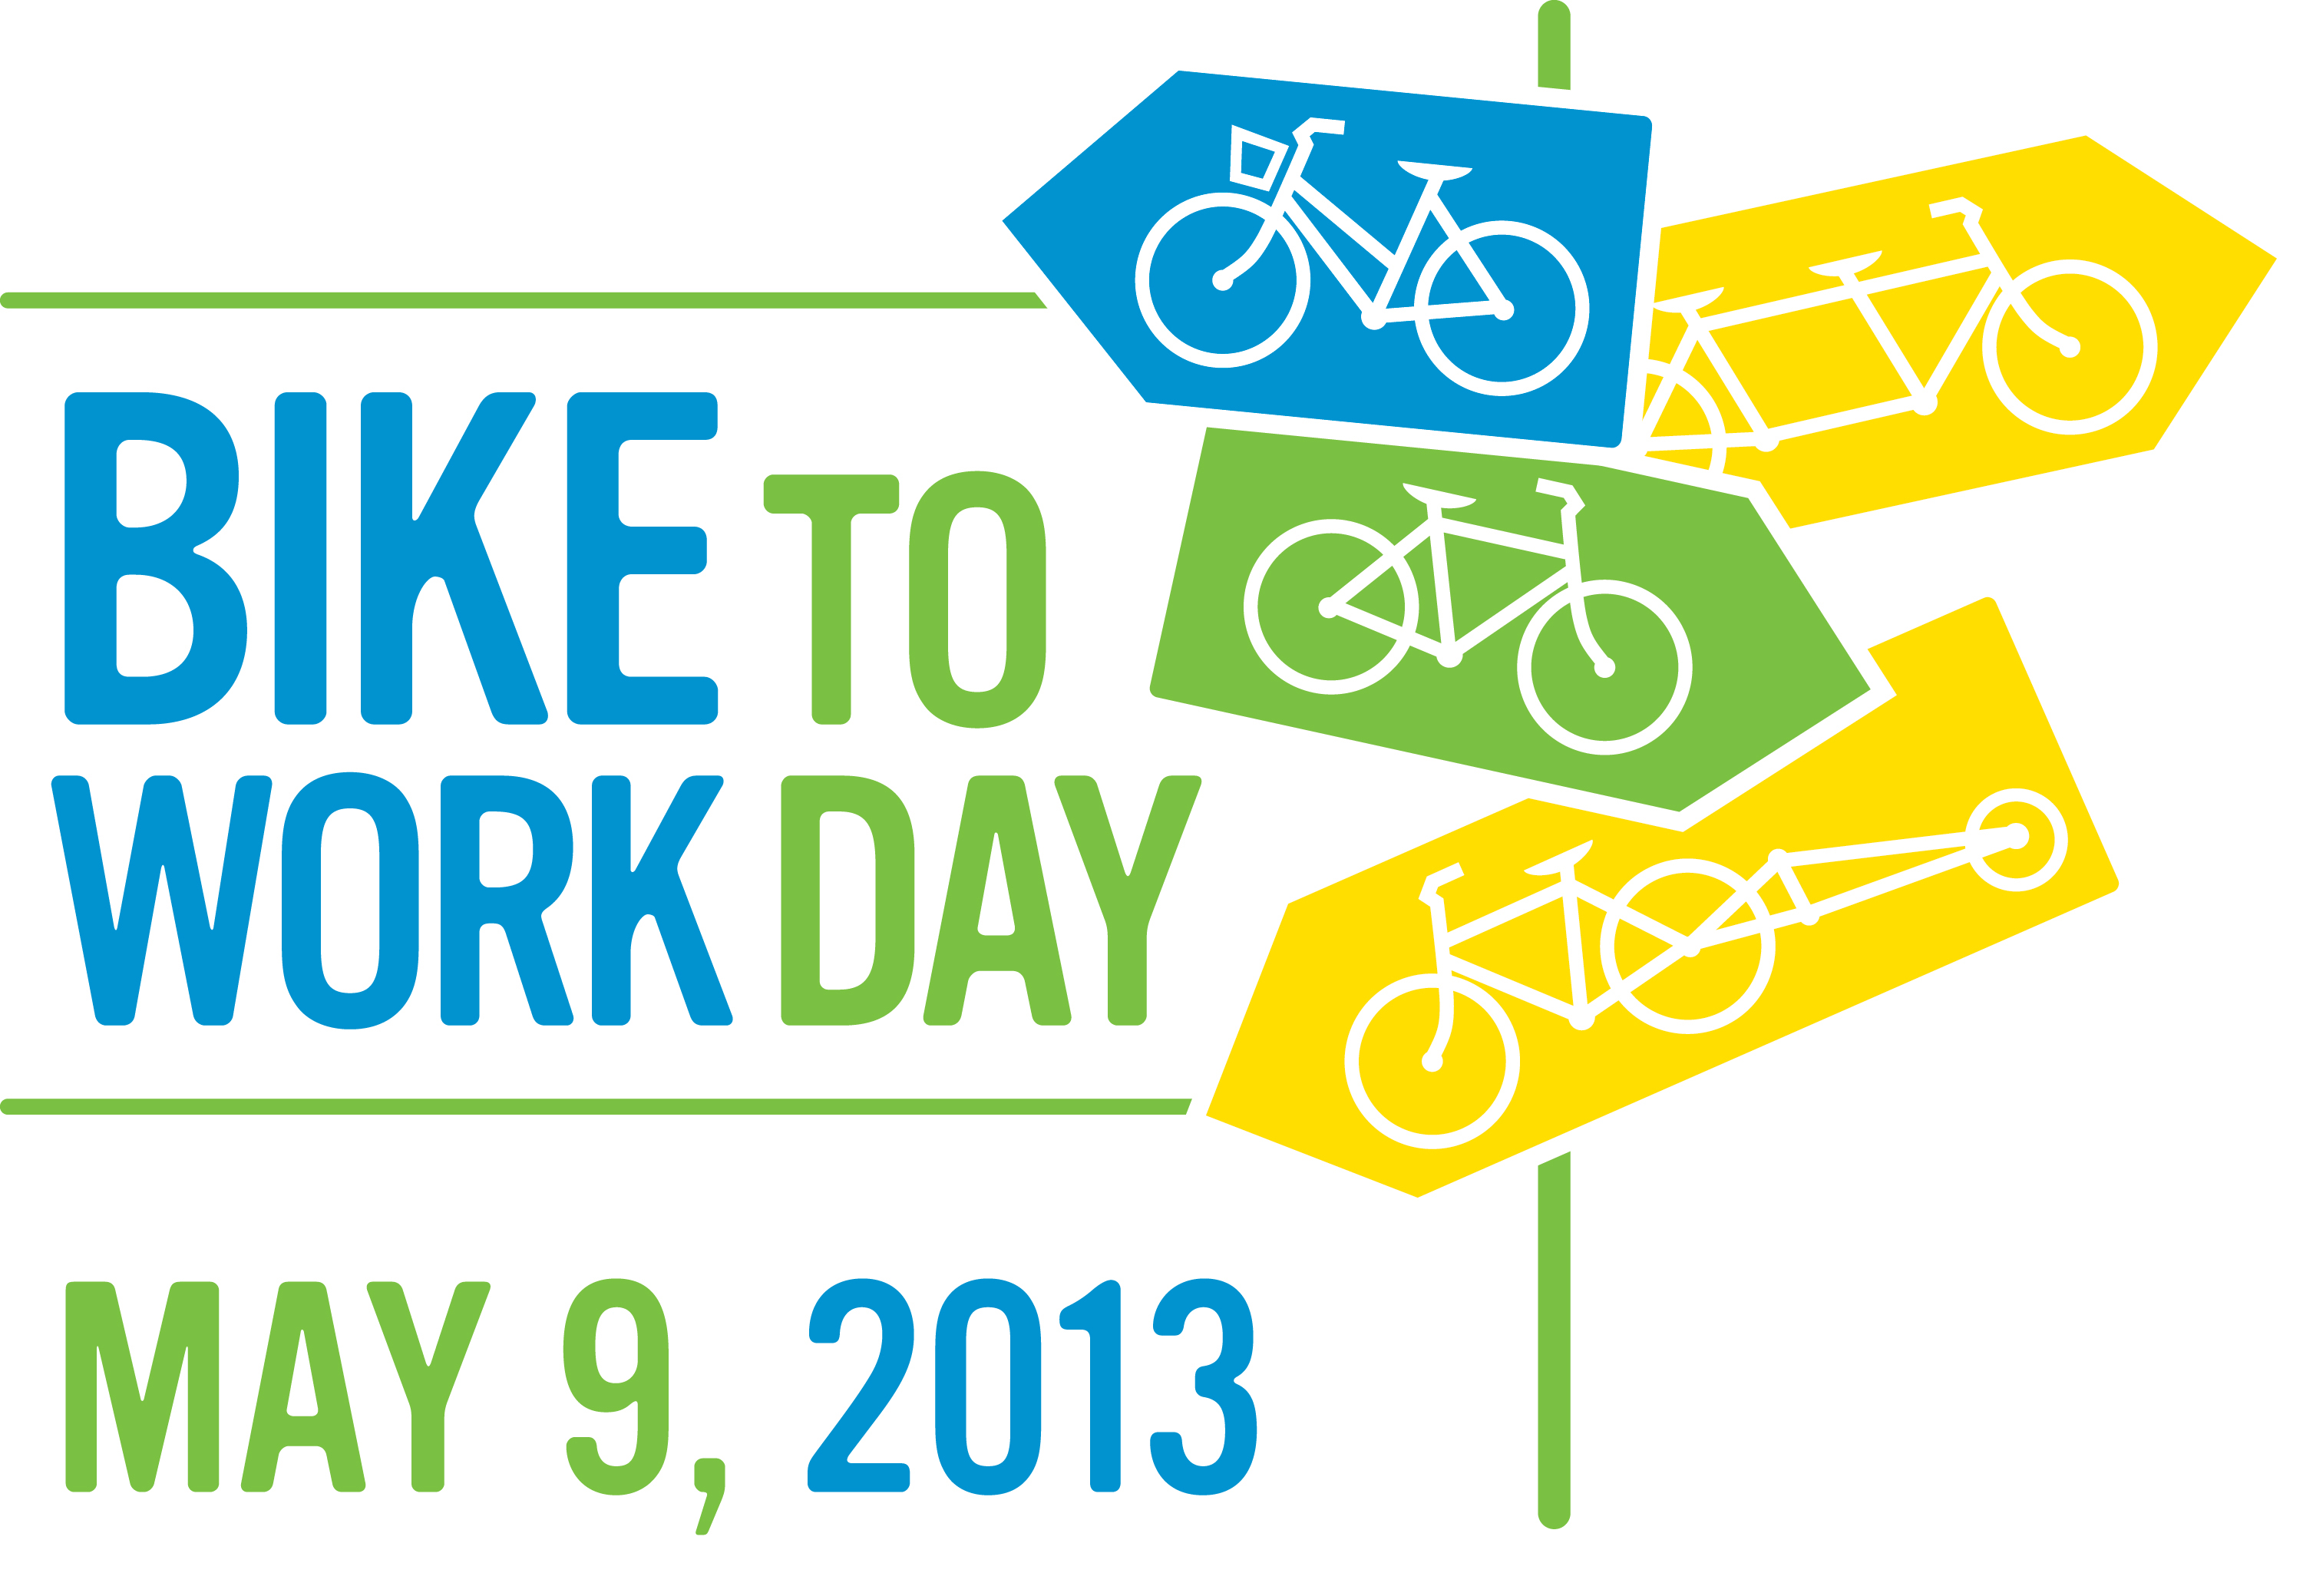 Oakland Bike to Work Day 2013 - Pancakes Make the Wheels Go 'Round